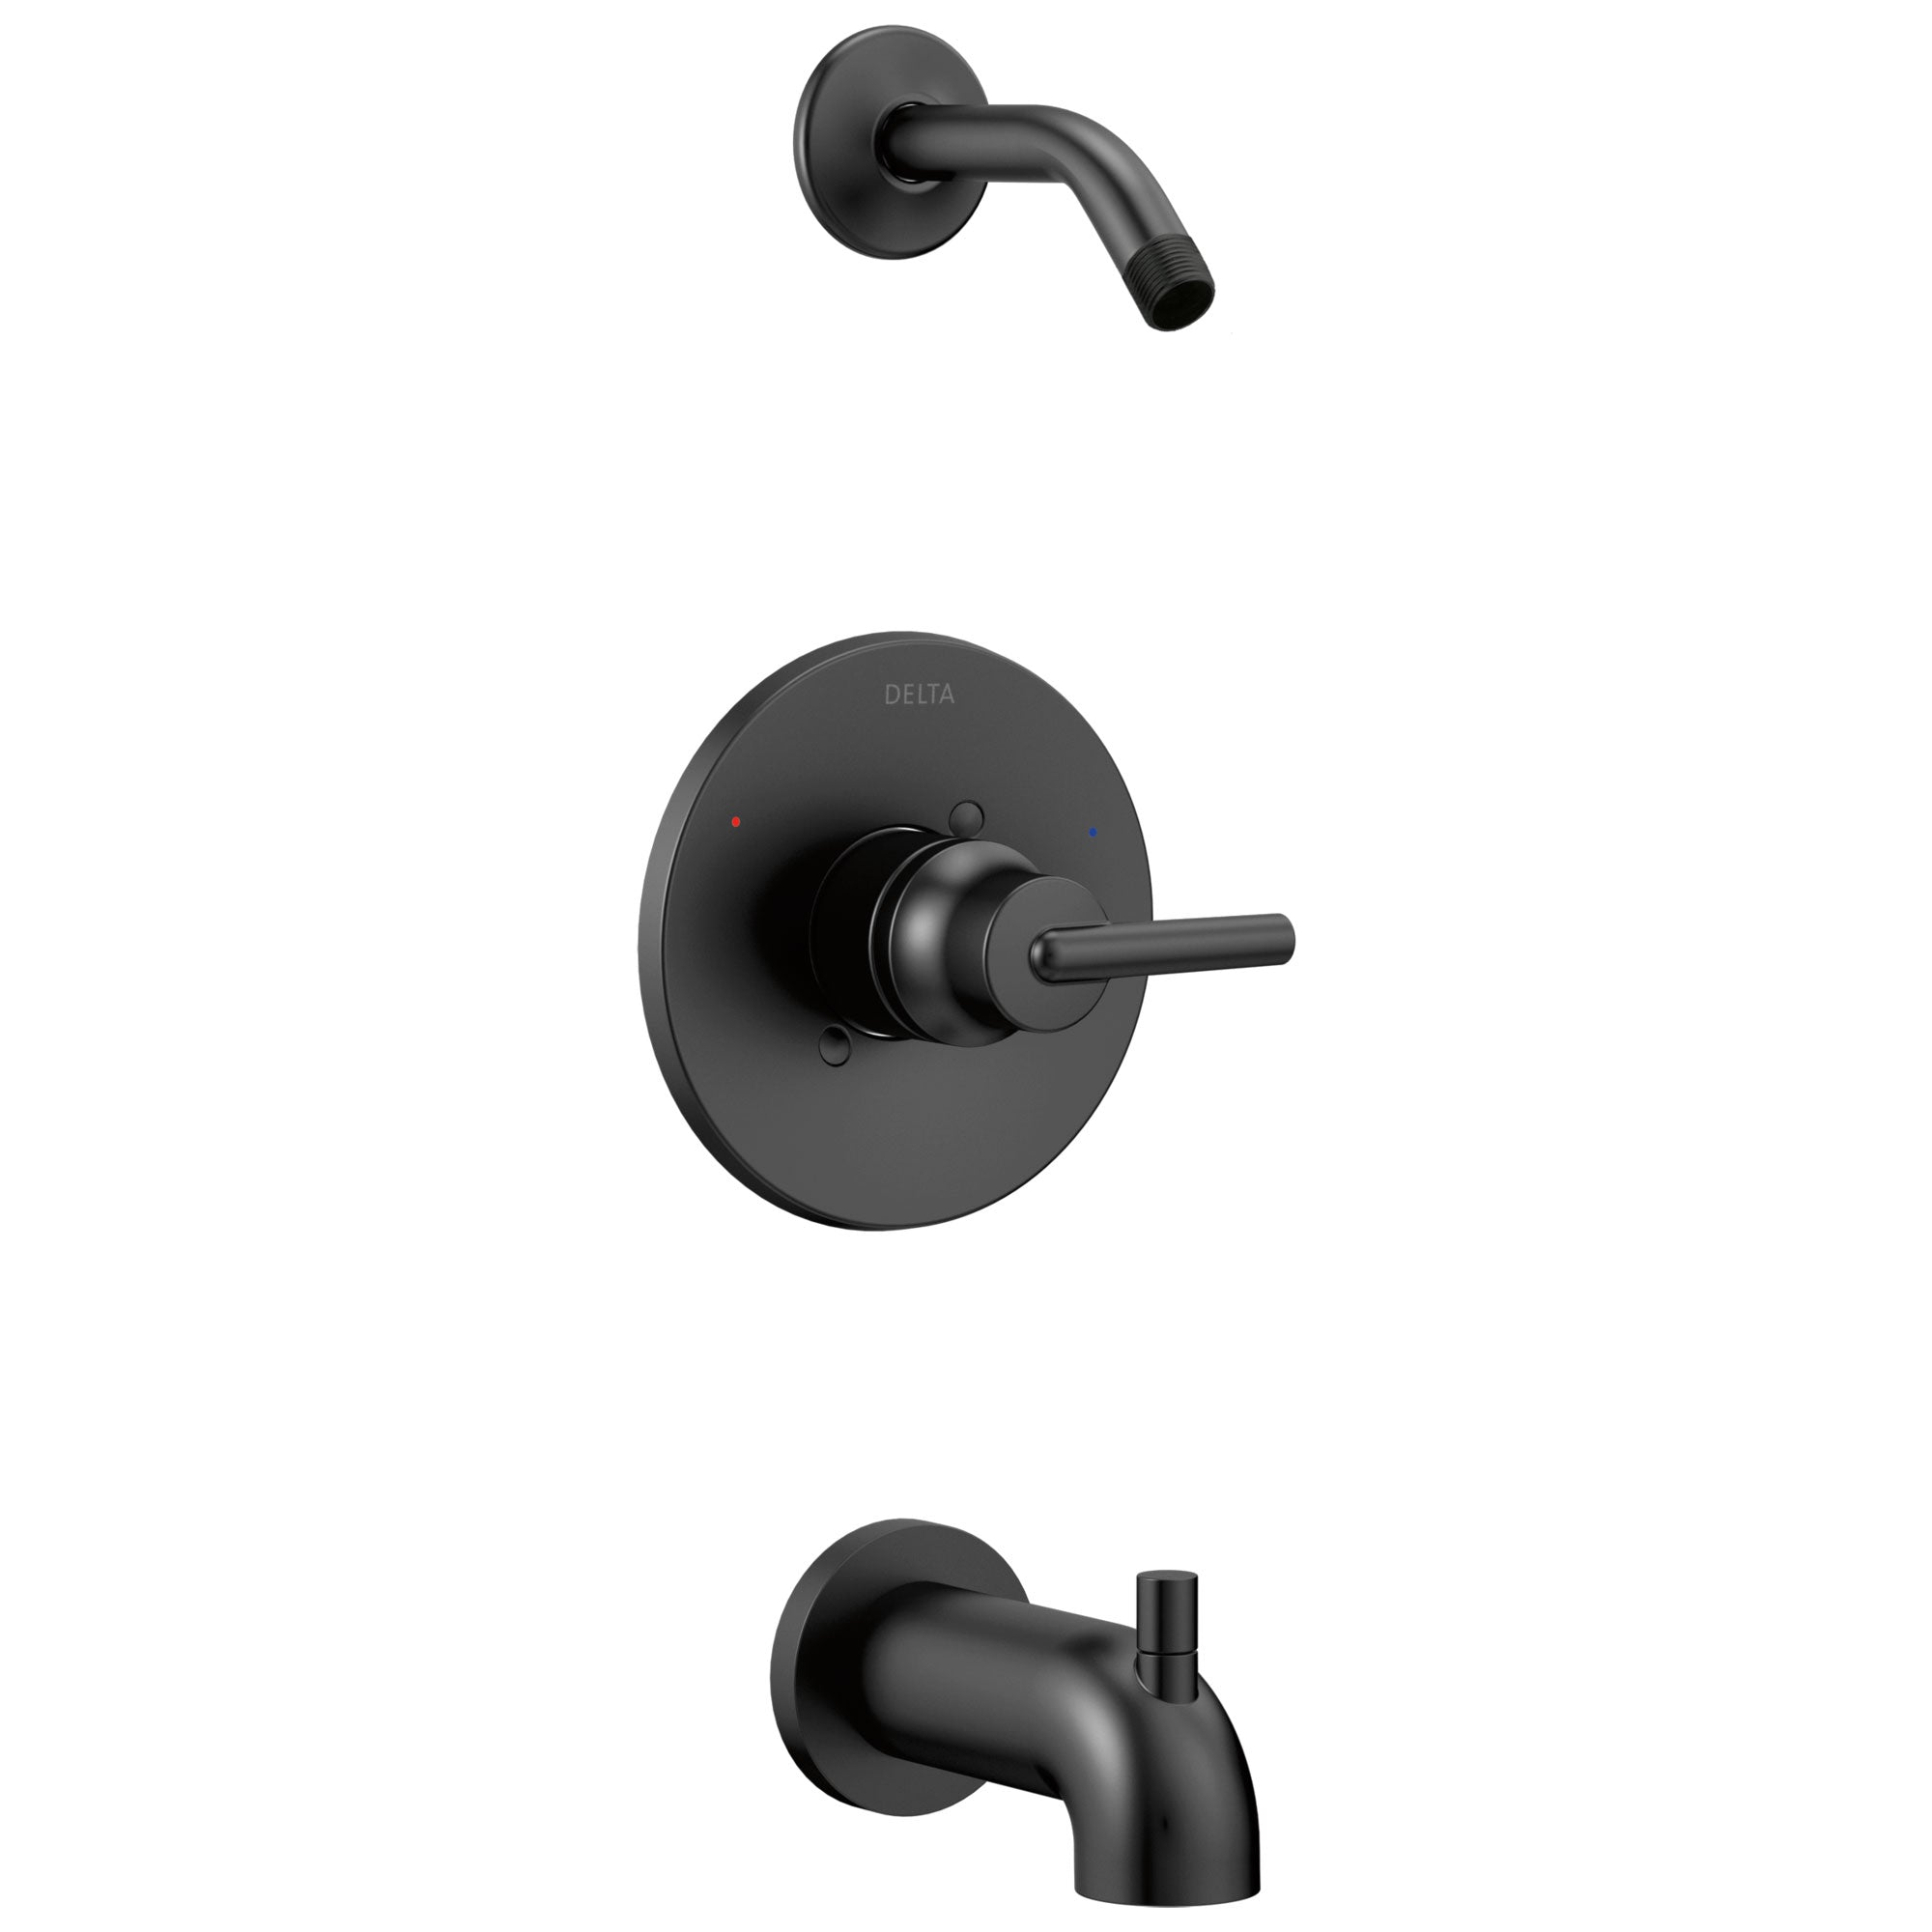 Delta Trinsic Collection Matte Black Finish Single Lever Tub and Shower Combination Faucet Trim - Less Showerhead Includes Valve with Stops D2398V